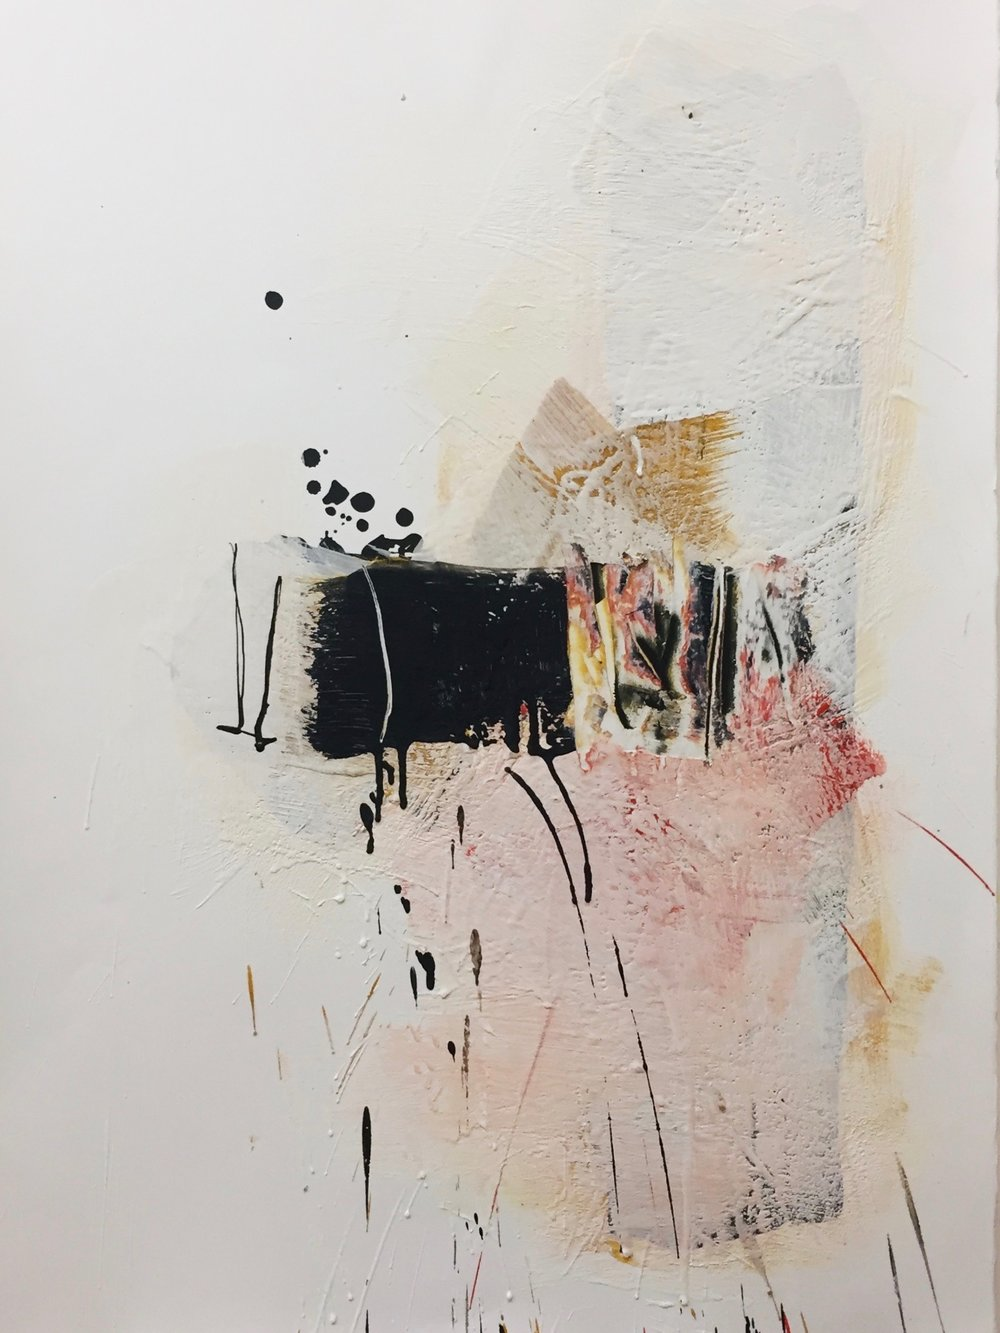 KW-083_Nonfiction 7_Encaustic on paper_2016_22x30.jpg